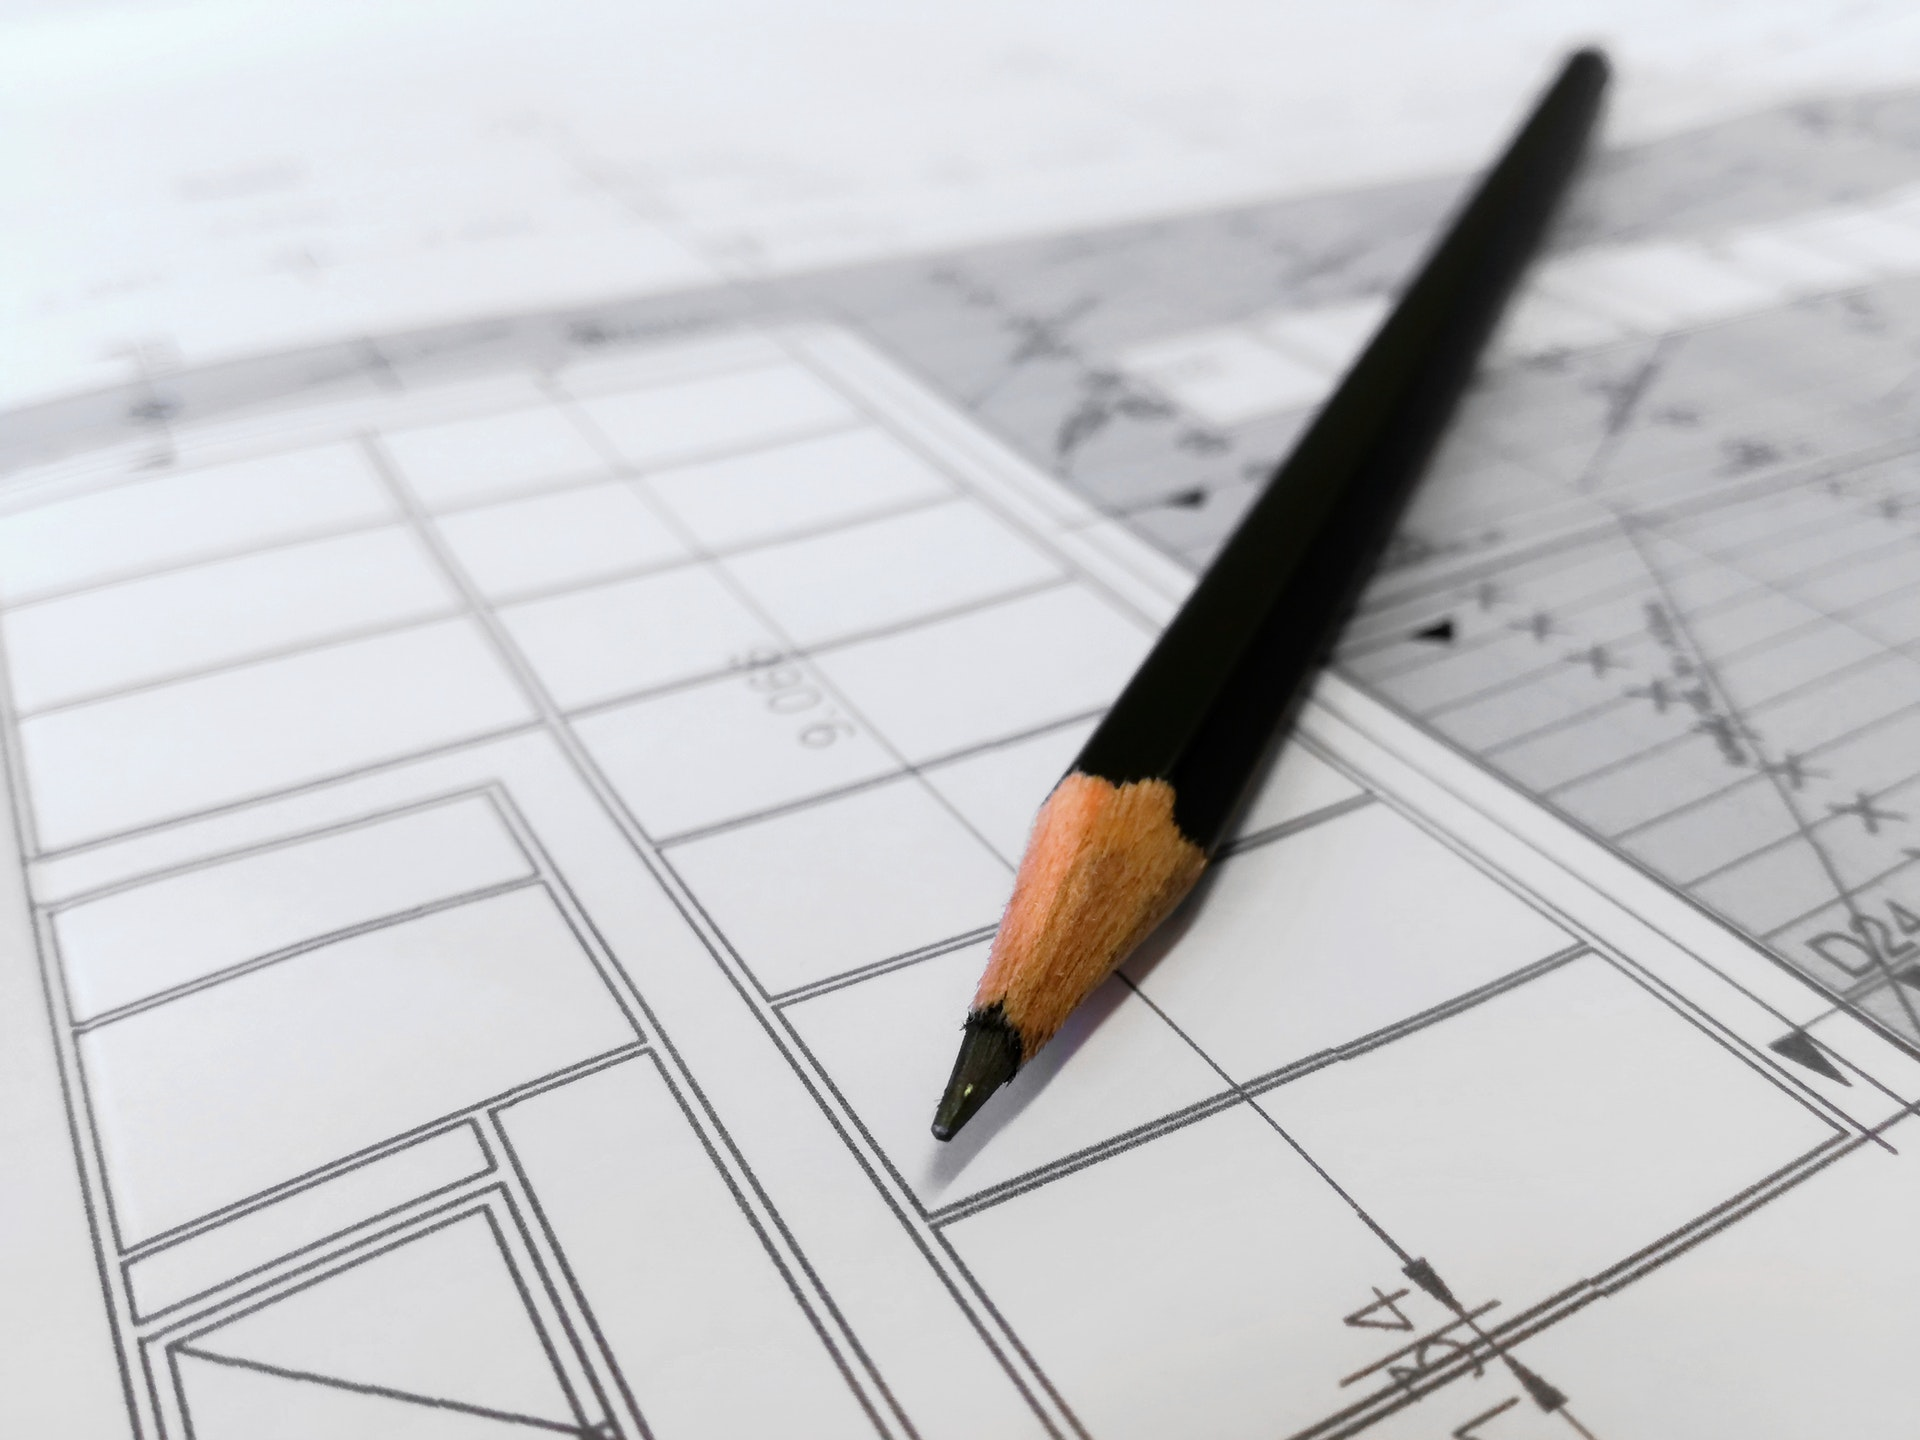 Planning drawings being created